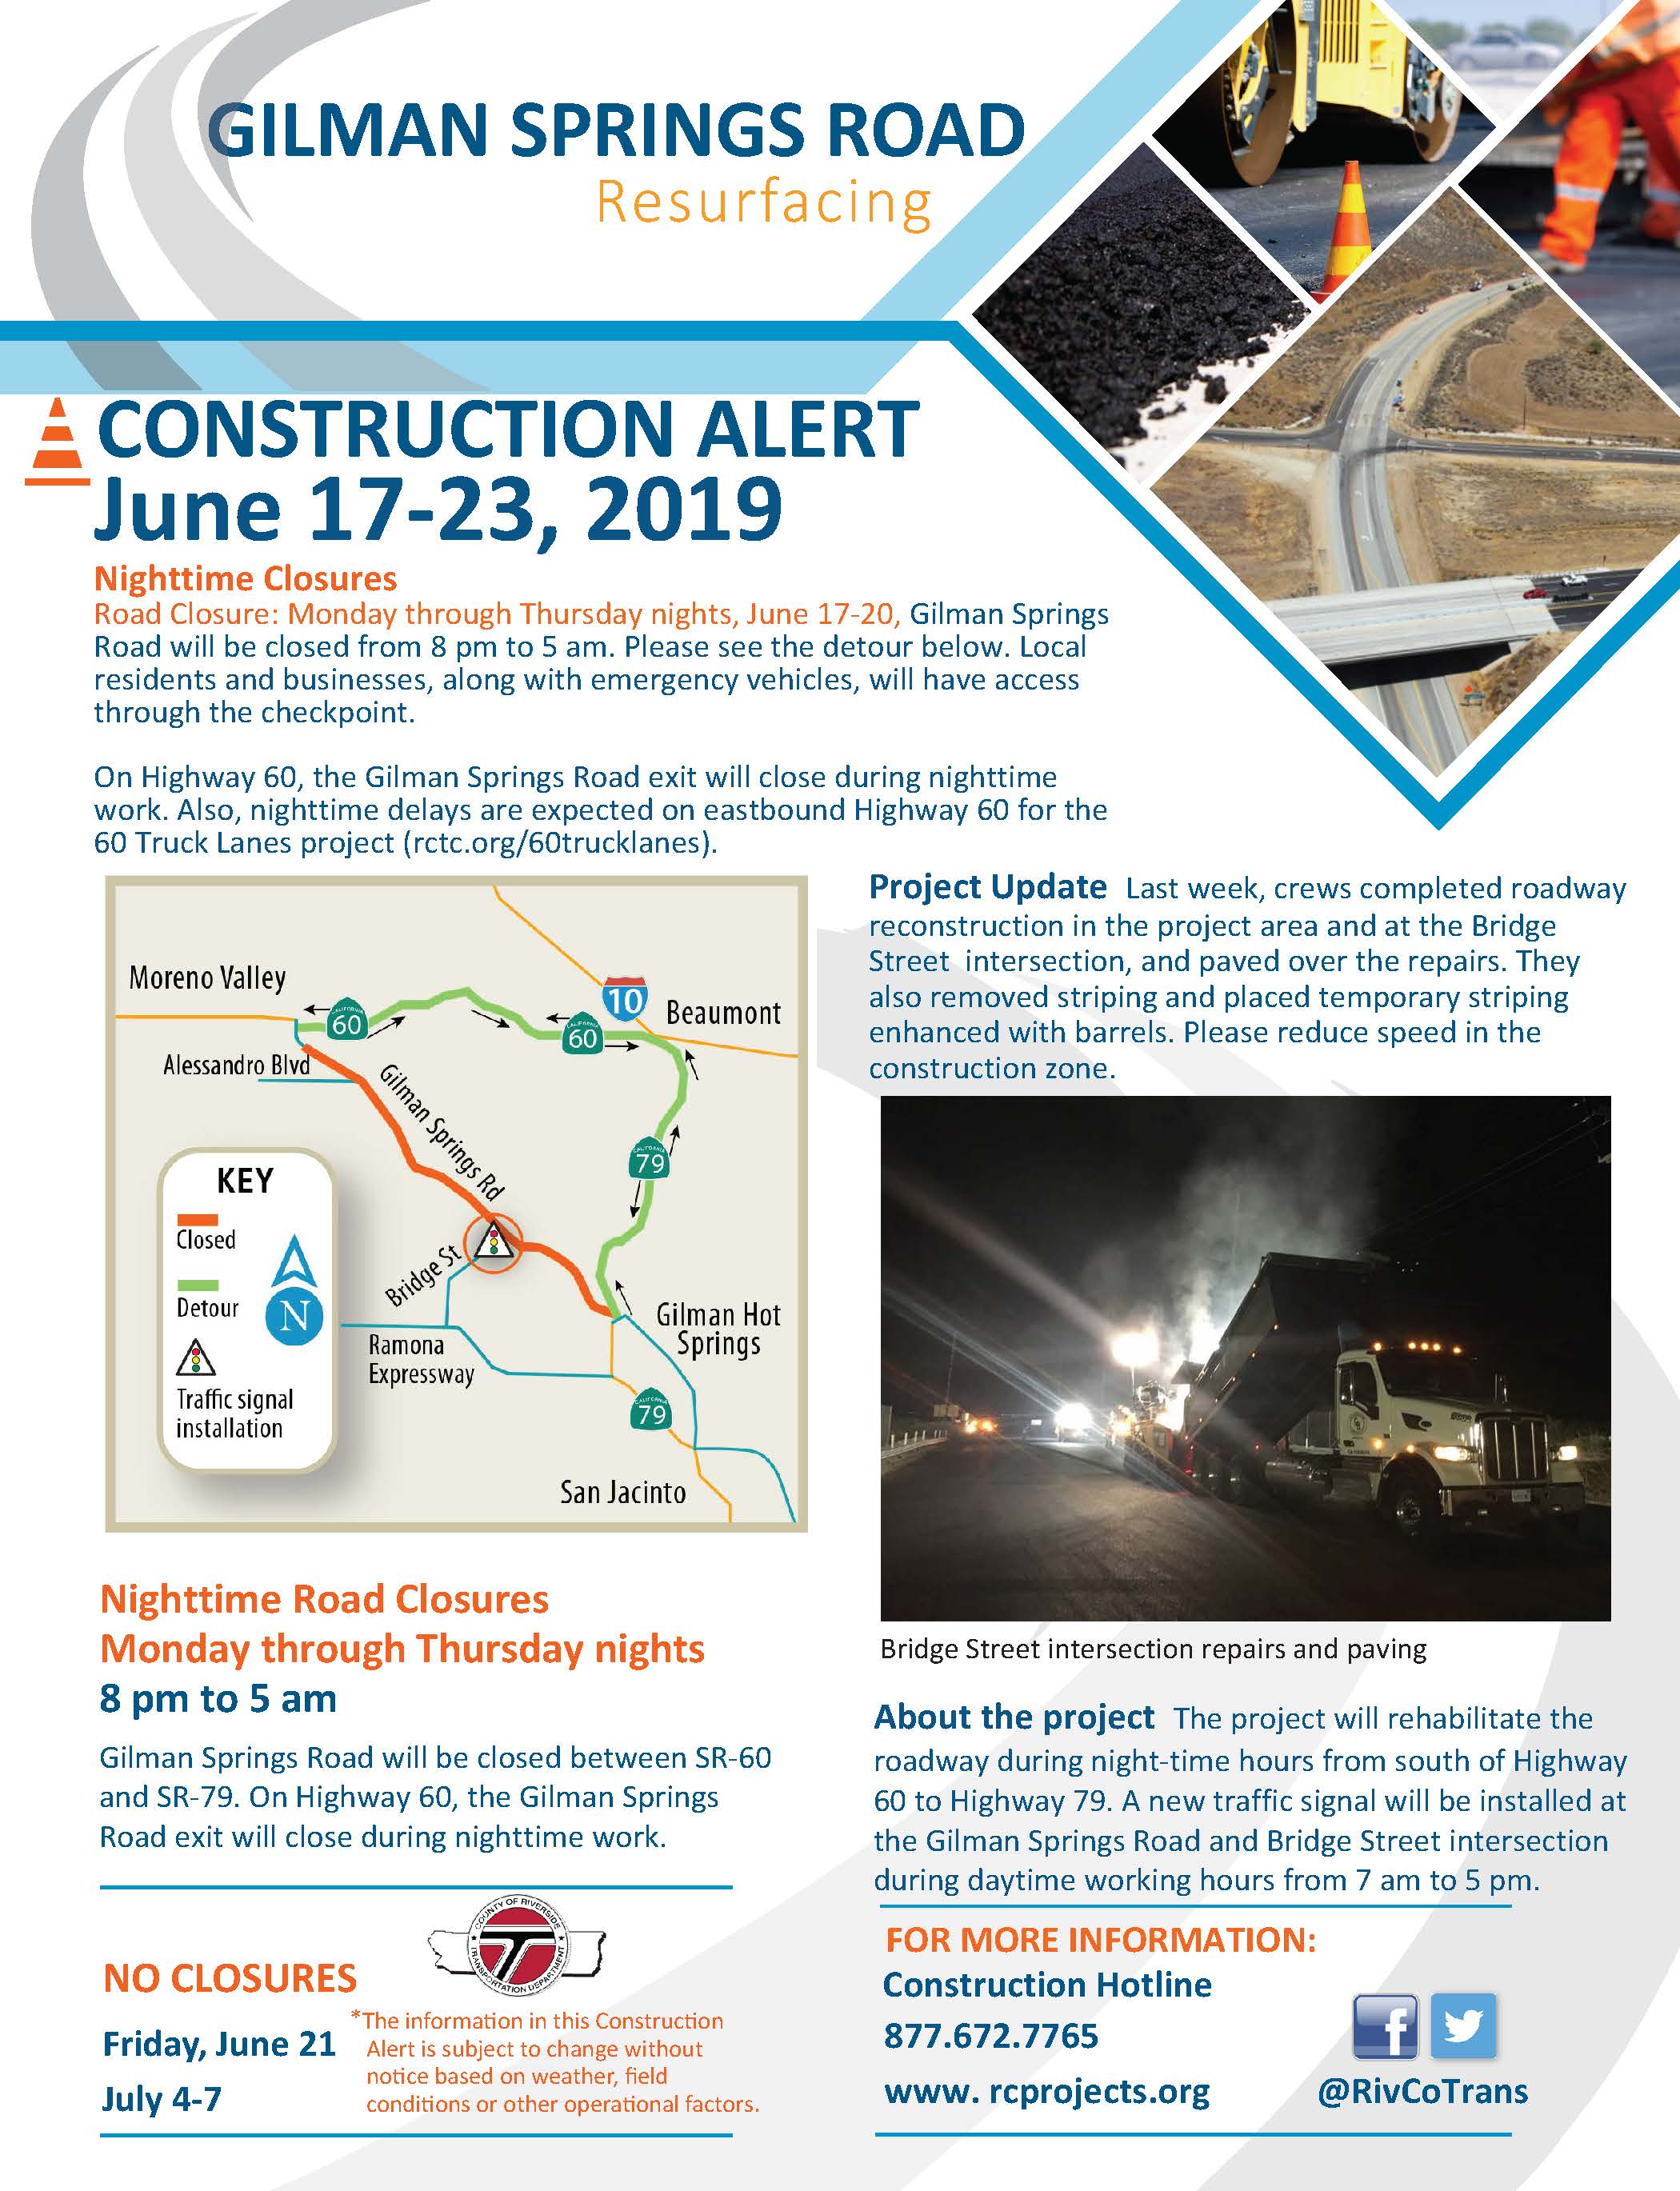 Construction Alert June 17-23, 2019: Gilman Springs Road